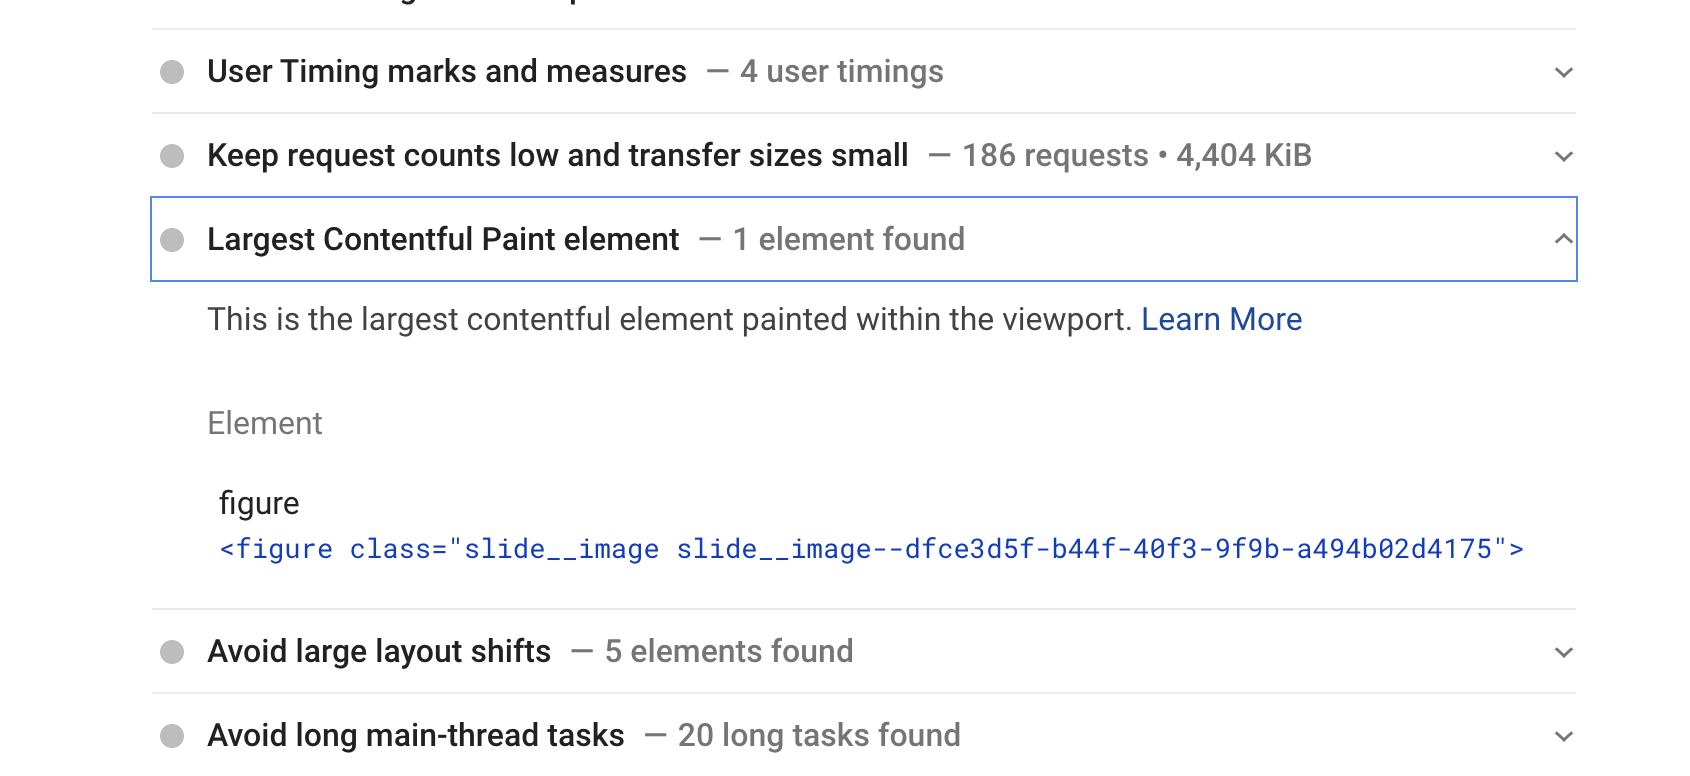 The LargestContentful Paint element found by PageSpeed Insights